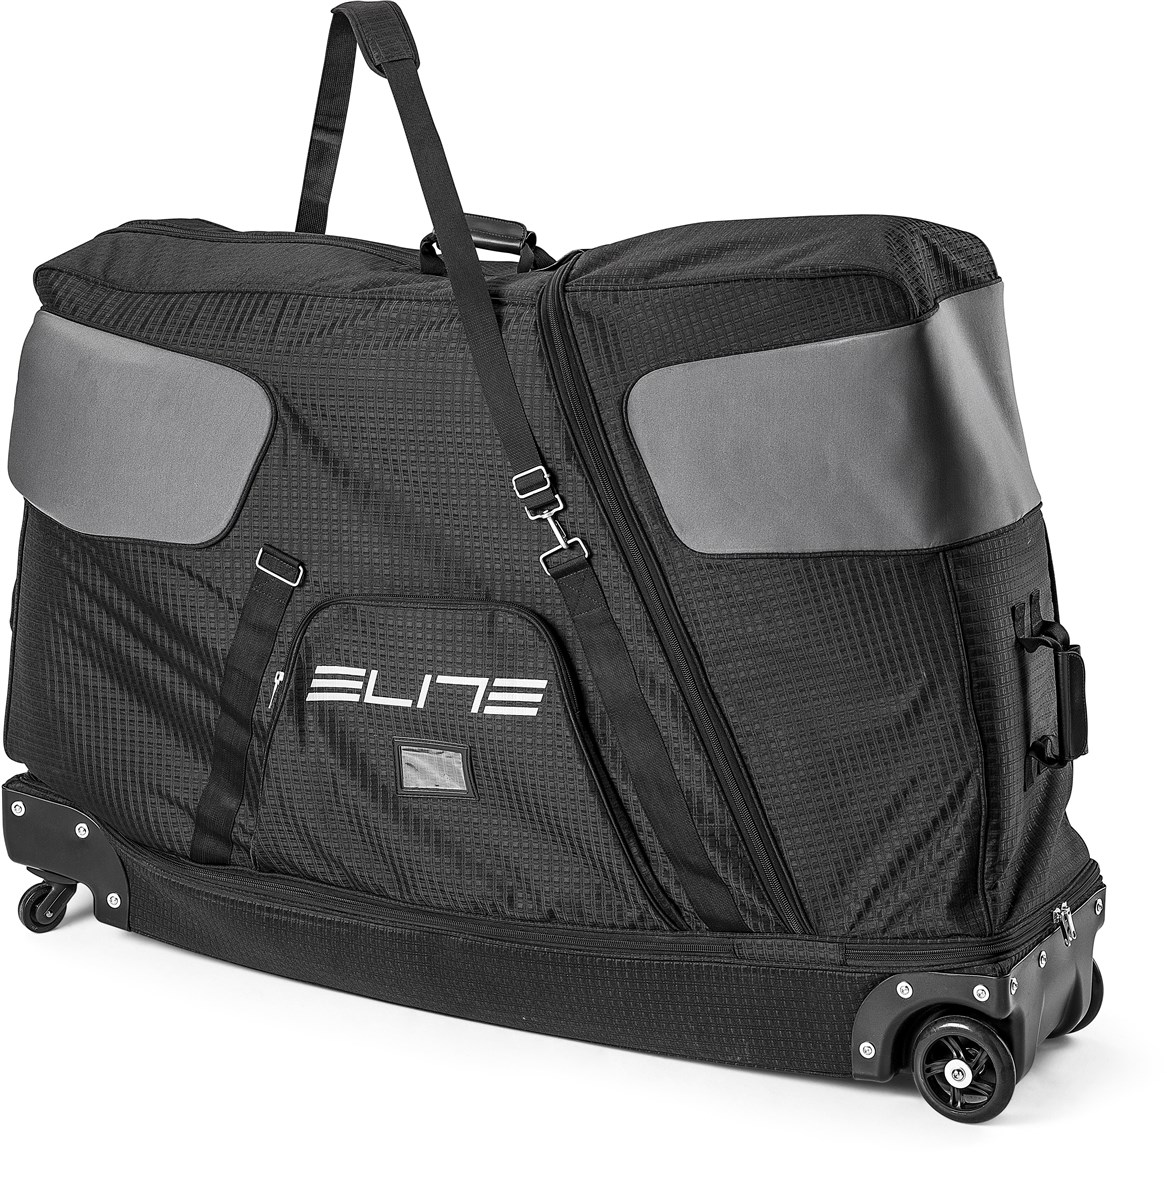 Elite Borson Foldable Bike Case | Cykelkuffert